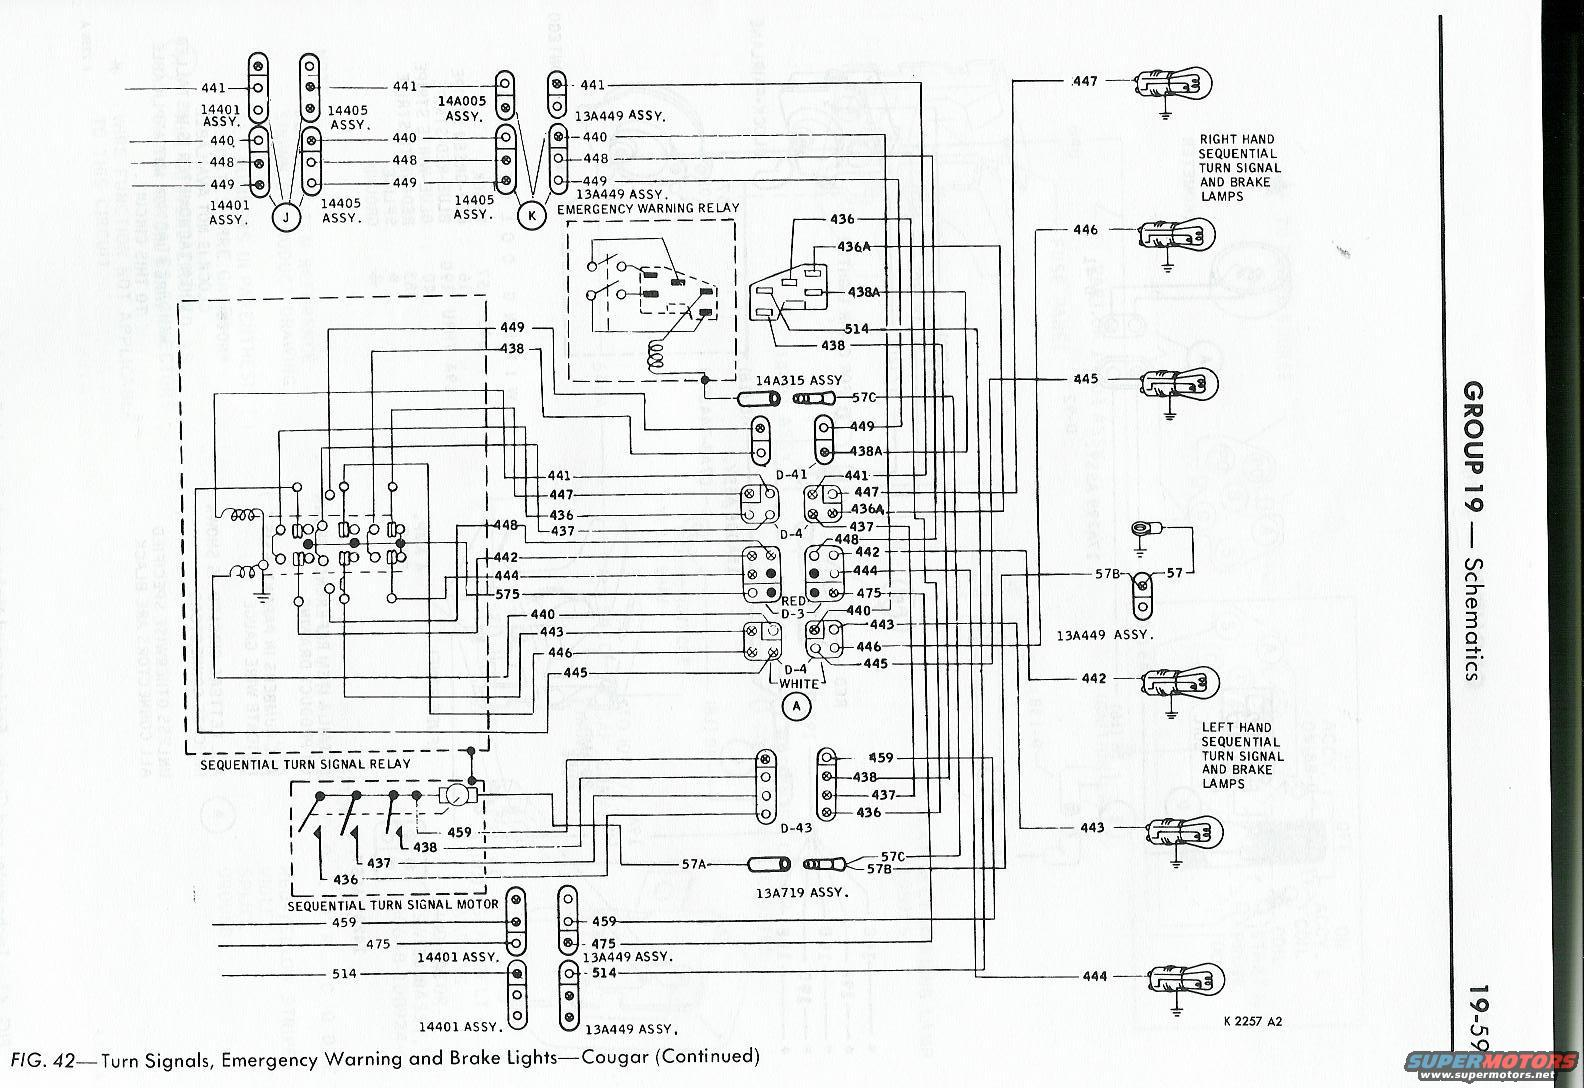 6820cougar20turn20signals202 wiring issues classic cougar community 1968 mustang turn signal wiring diagram at edmiracle.co